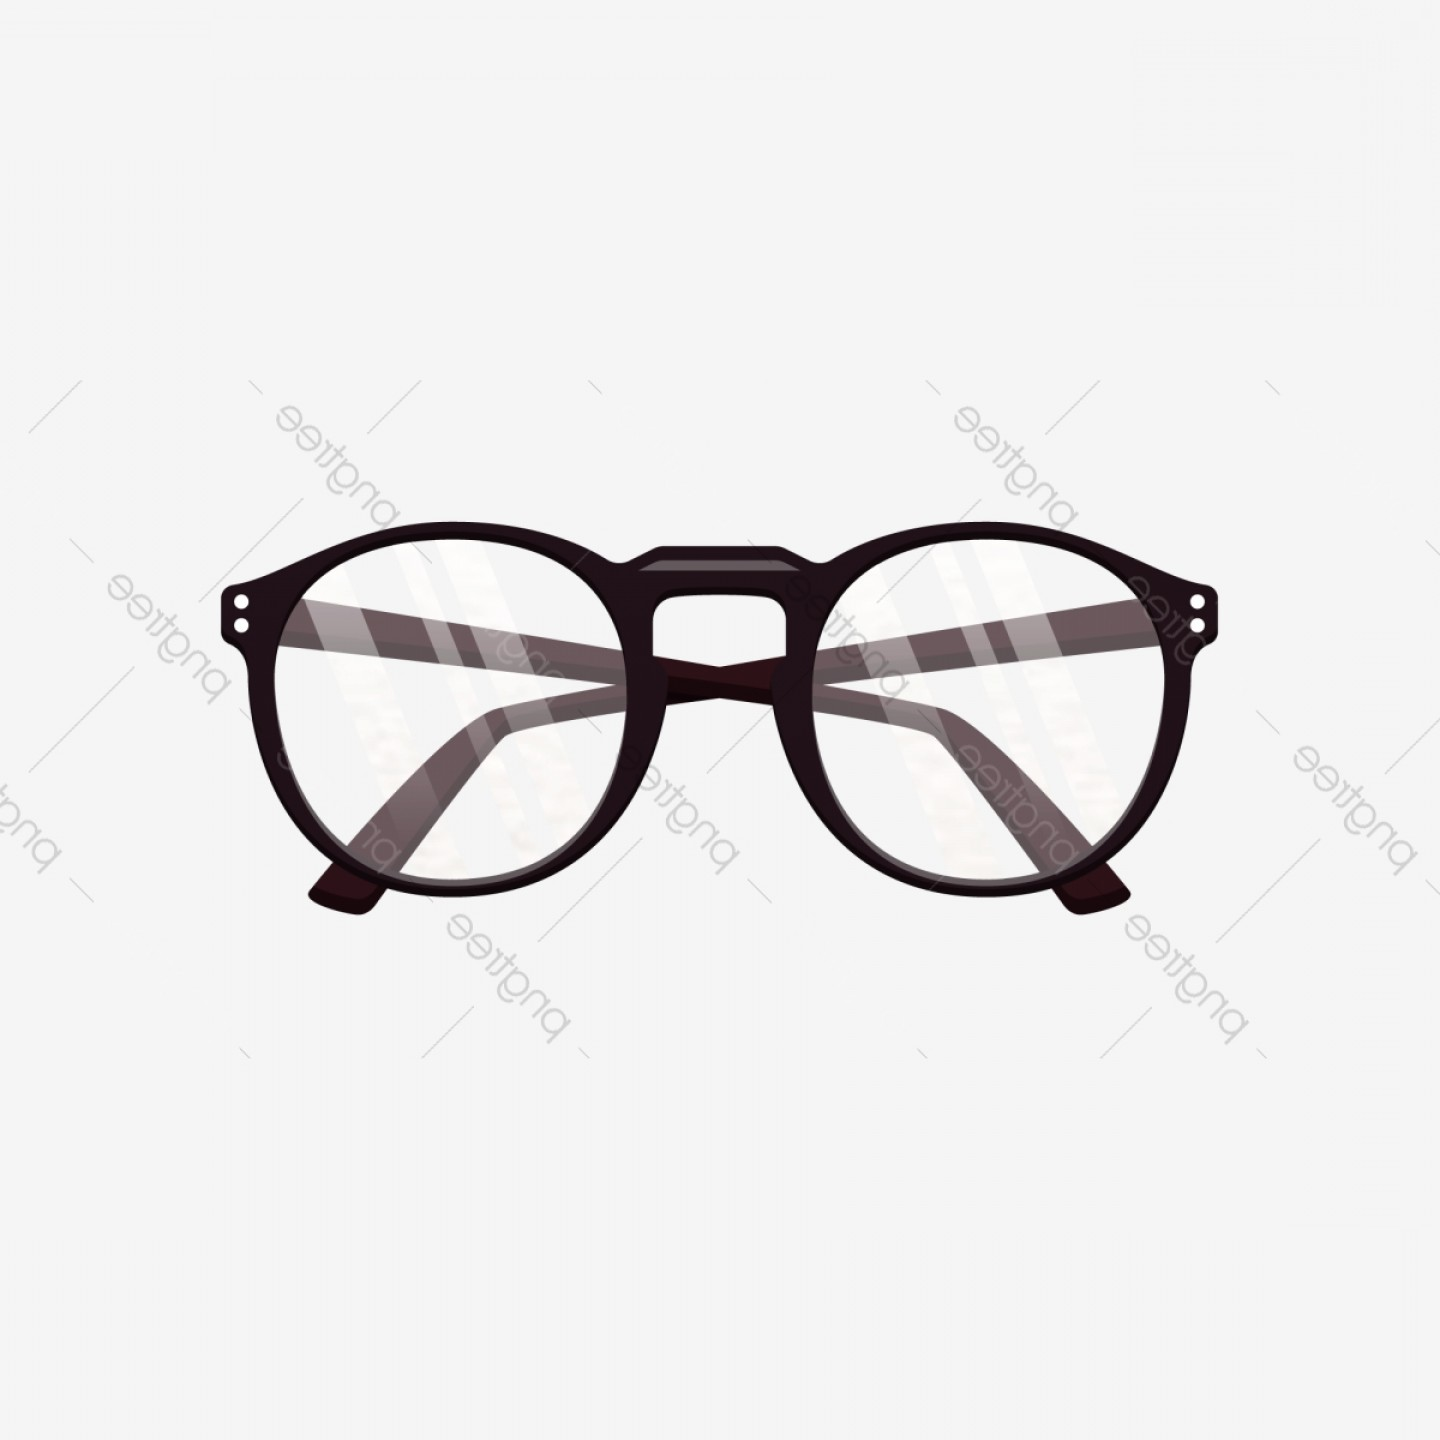 Reading Glasses For Men Vector: A Pair Of Reading Glasses Is Commercial Element